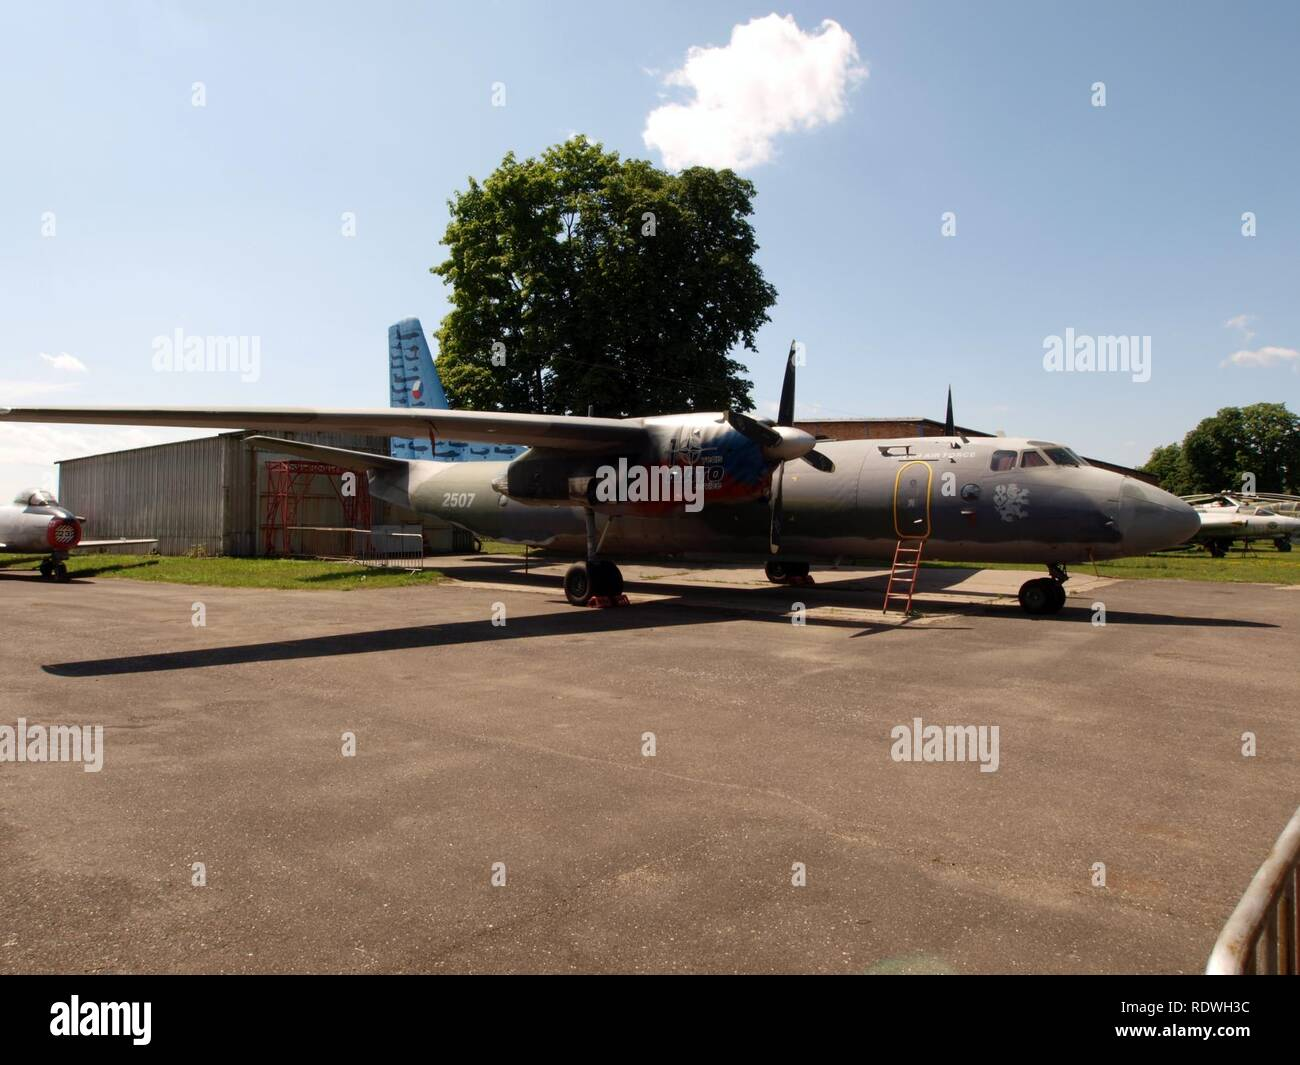 Antonov An-26 Czech airforce 2507 pic5. - Stock Image